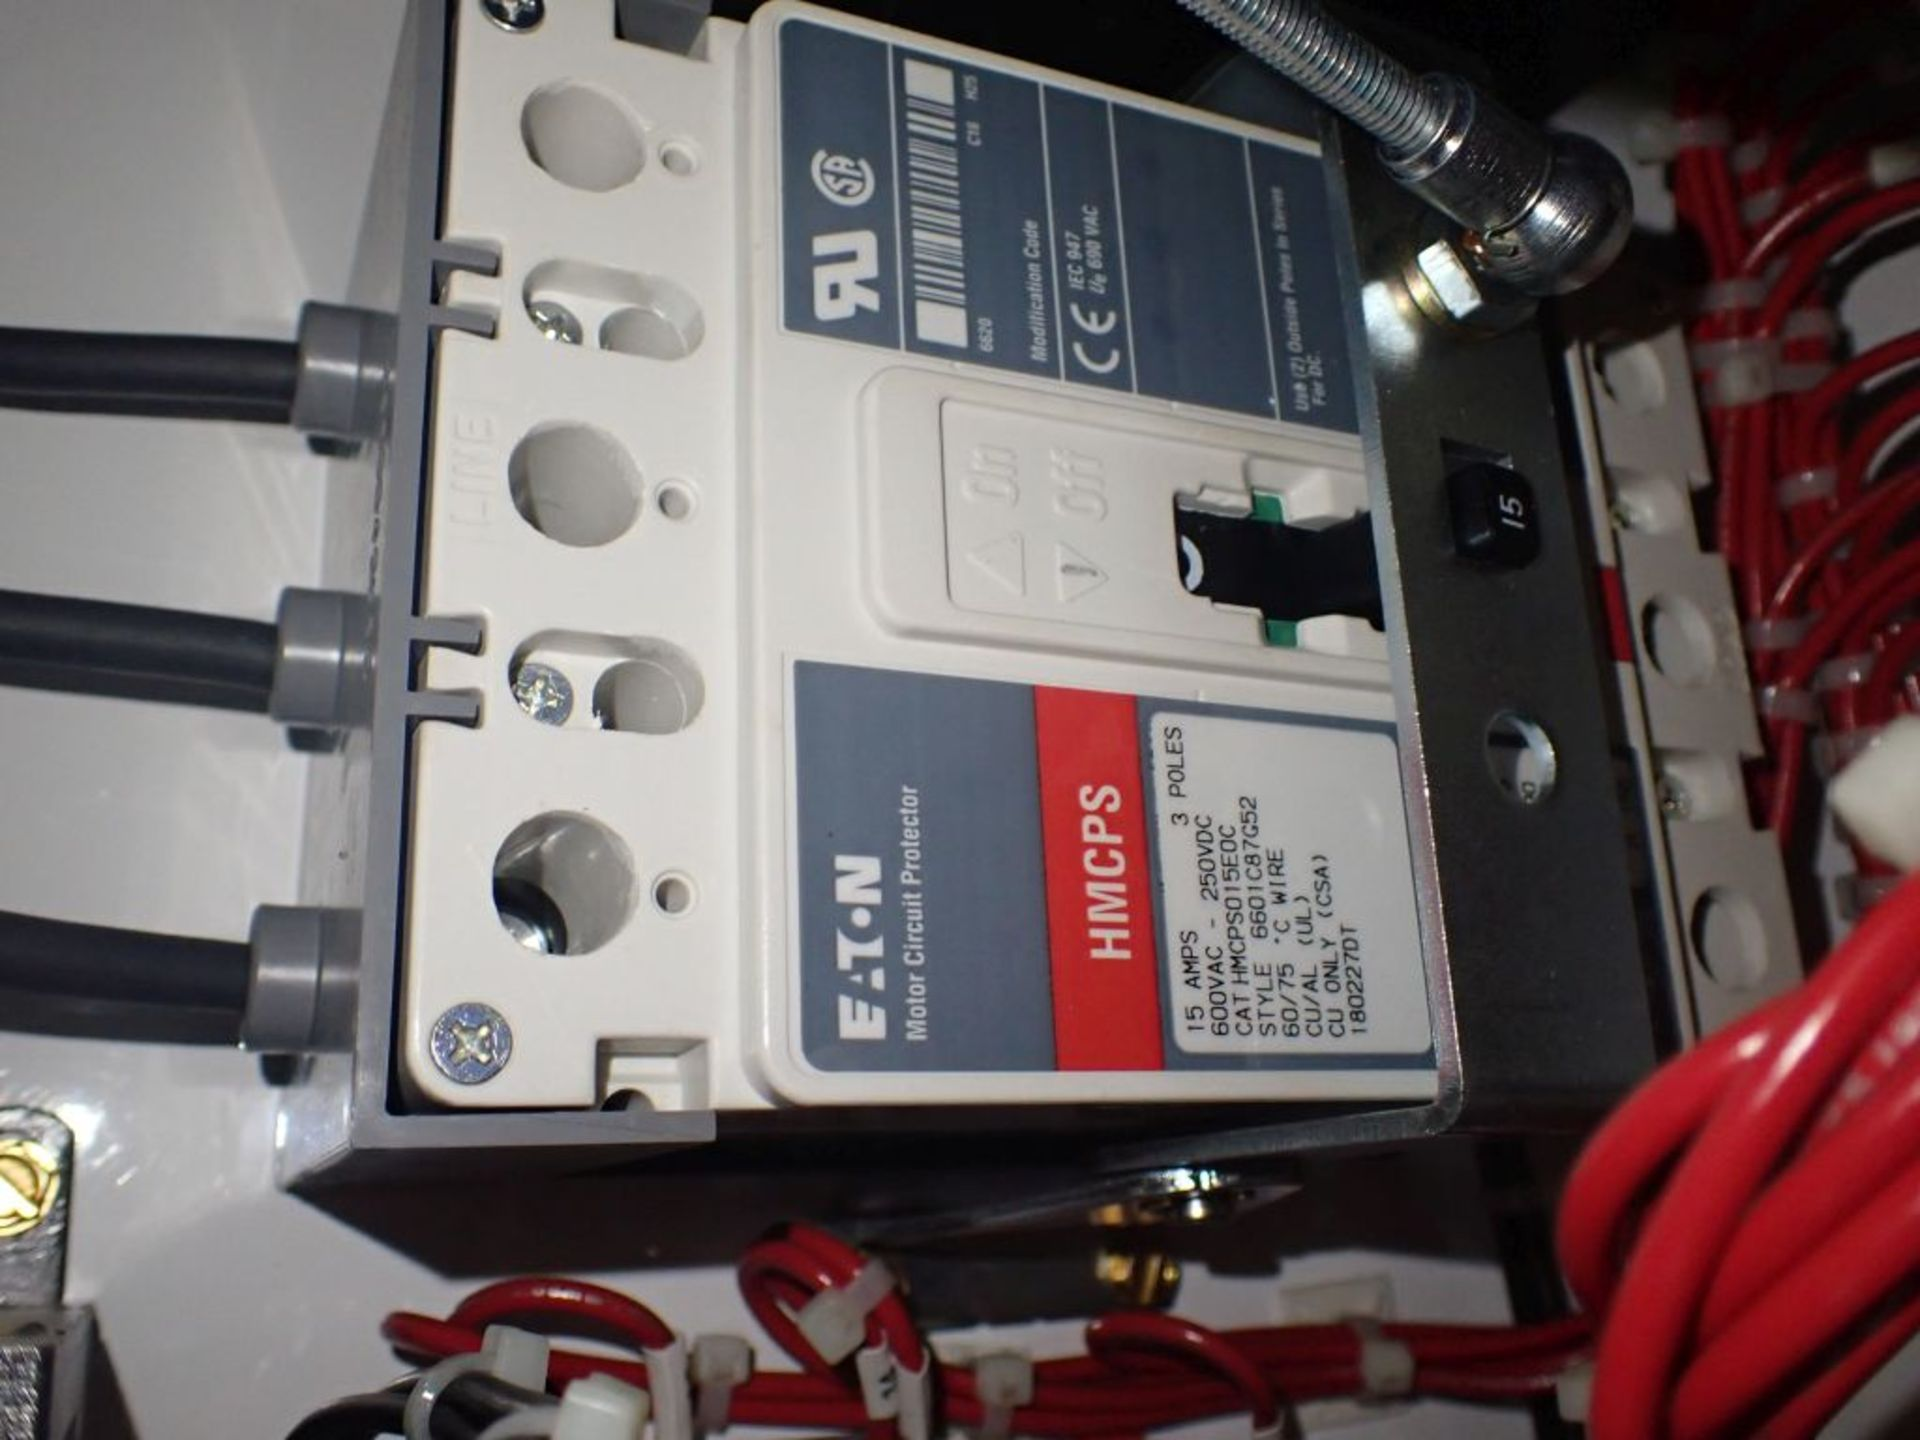 Eaton Freedom Flashgard Motor Control Center w/Components | (5) F206-15A-10HP; (4) F206-30A-10HP; ( - Image 55 of 84